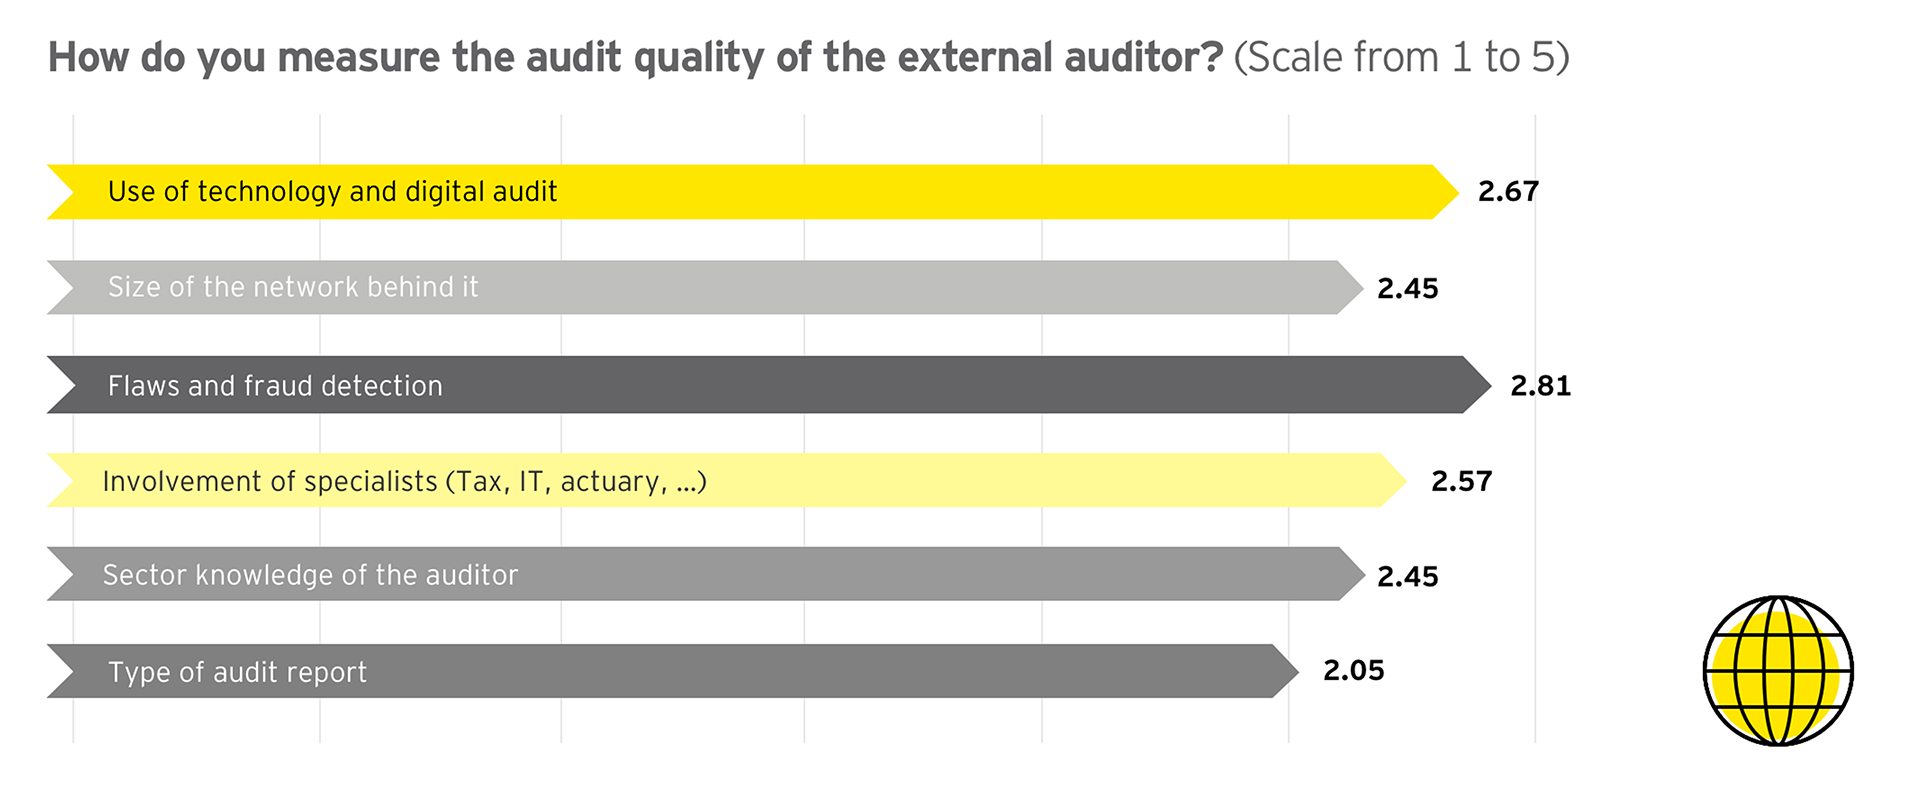 Graph: How do you measure the audit quality of the external auditor? (Scale from 1 to 5)